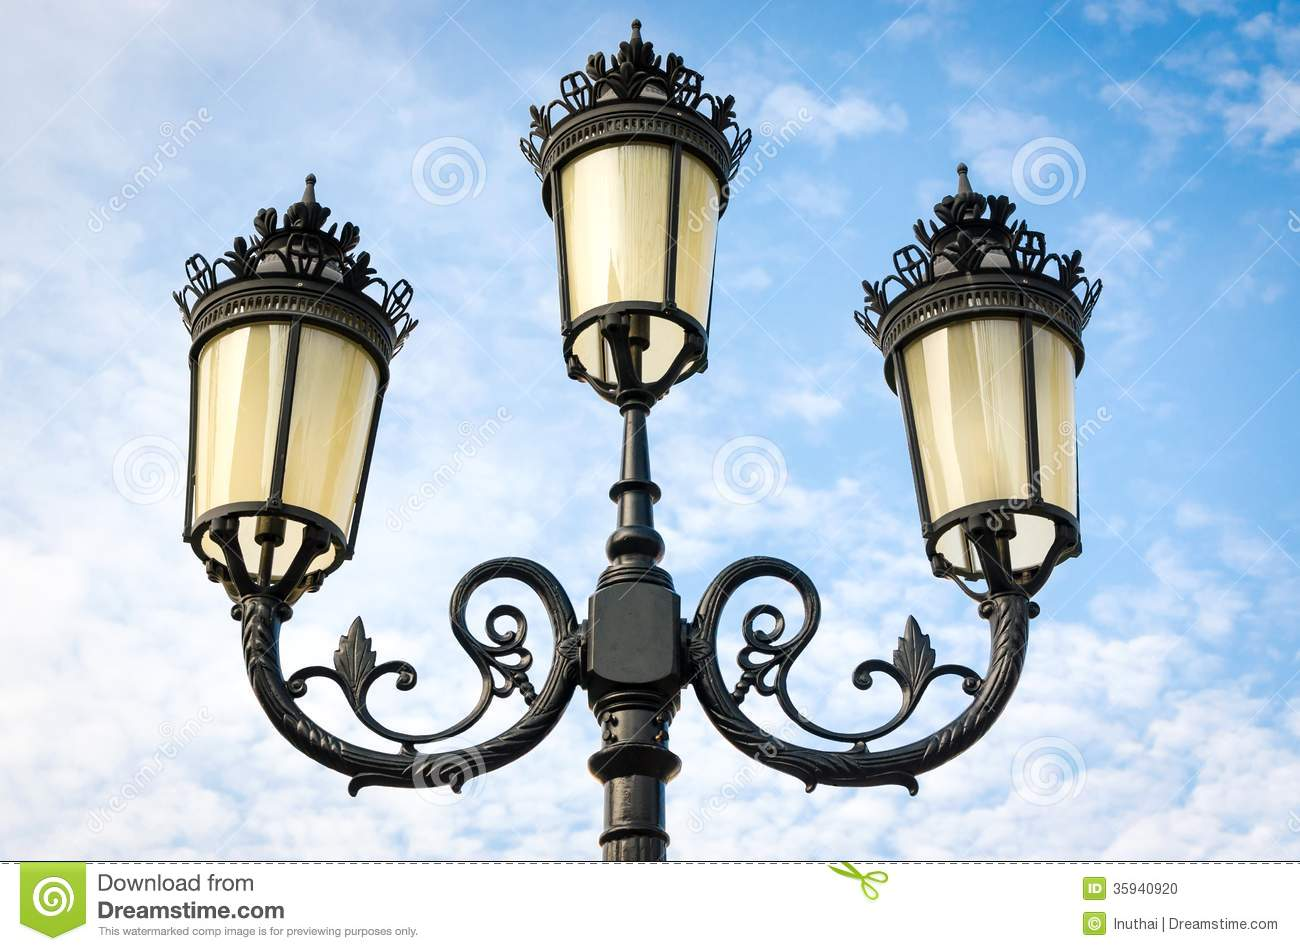 Indoor Street Light Lamp 1000 43 Images About Lamp Posts And Lanterns On Pinterest